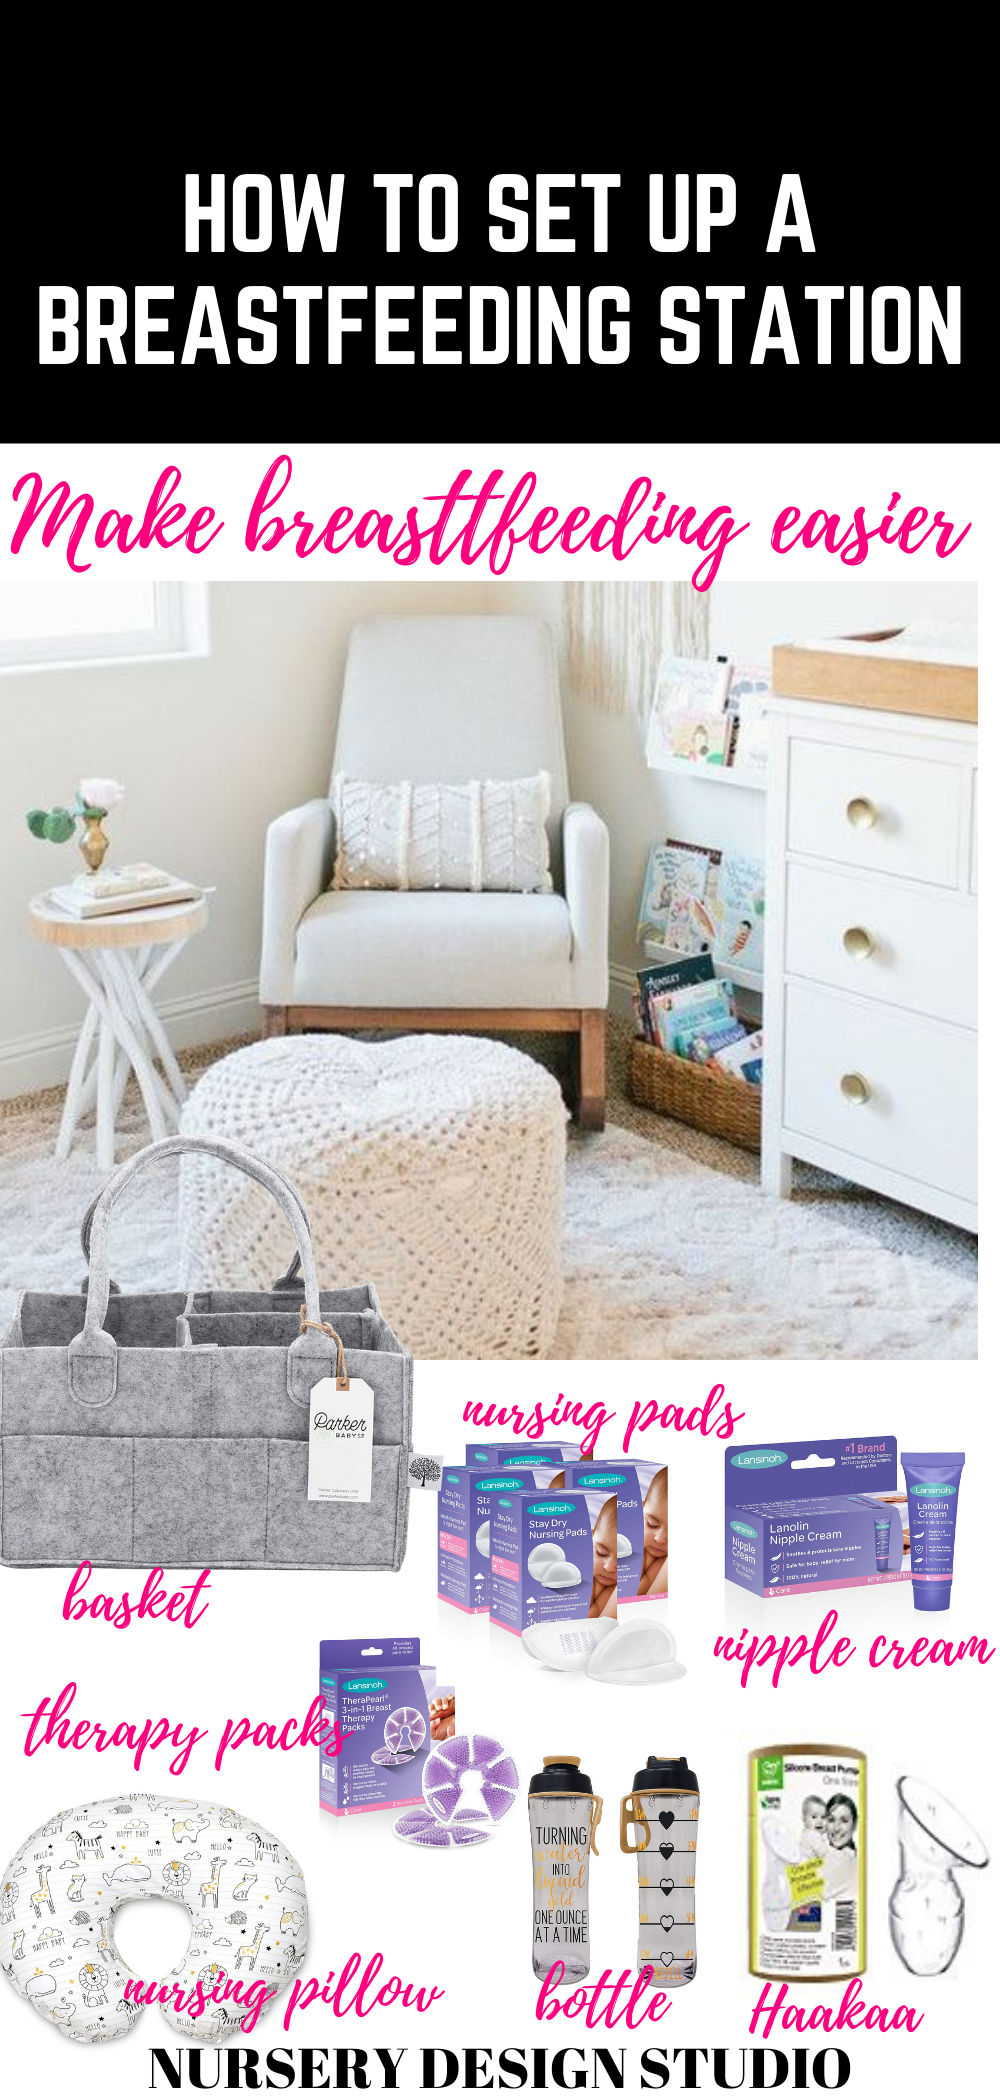 HOW TO SET UP A BREASTFEEDING STATION